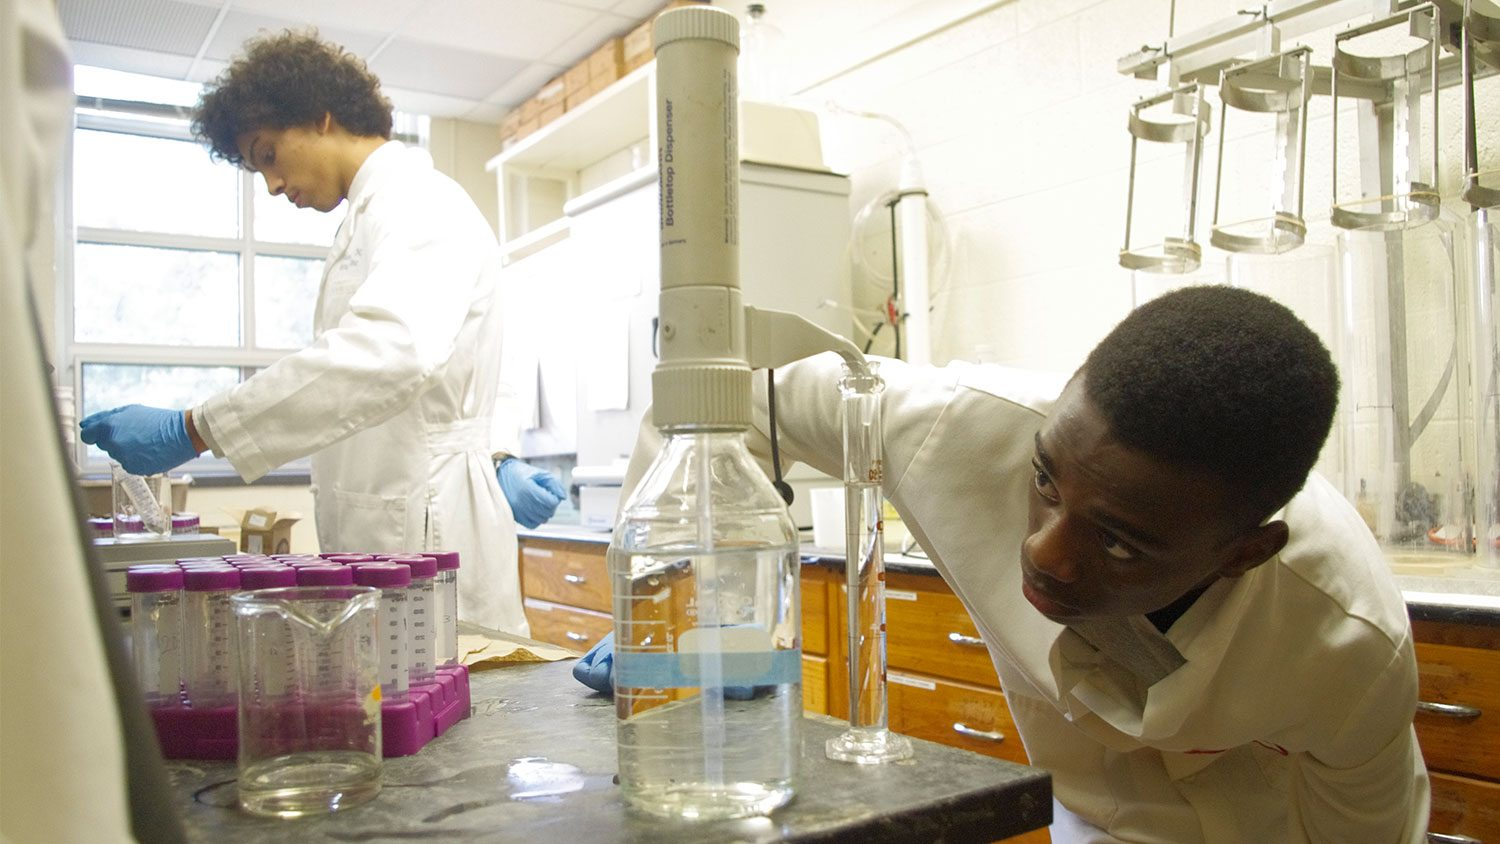 Two male high schools students working in a lab